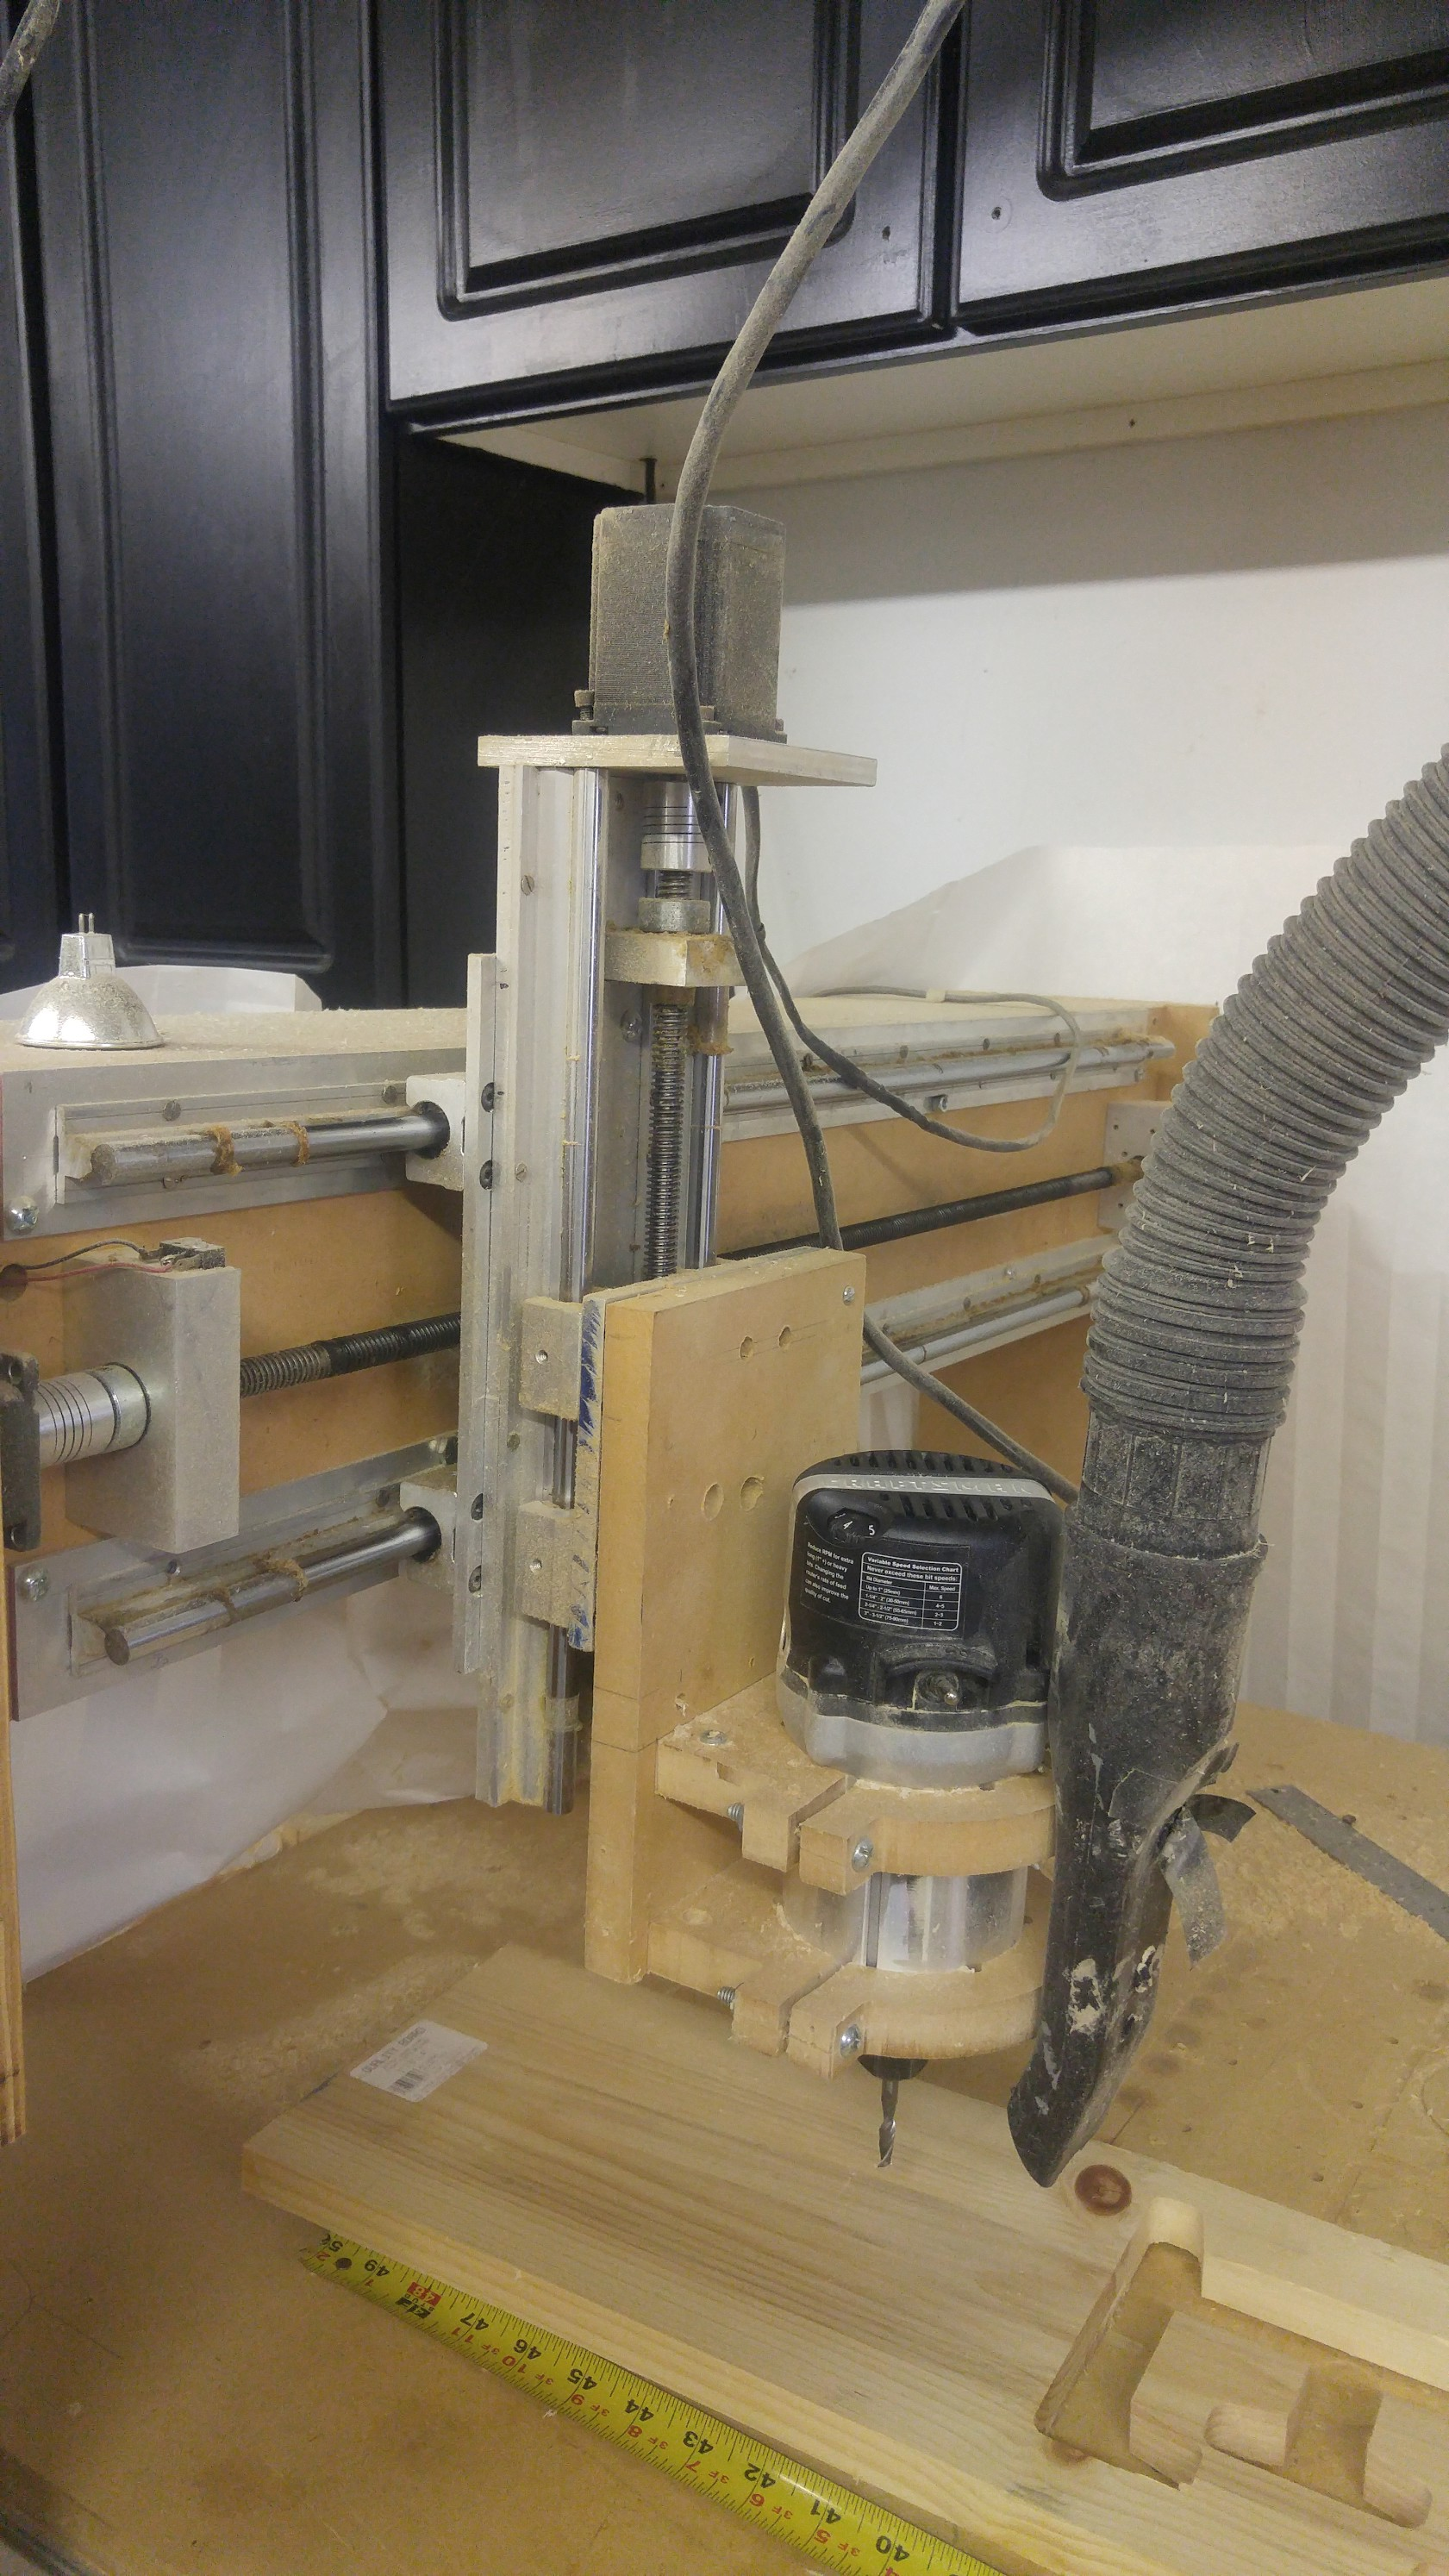 Bruces DIY Machine  1.jpg